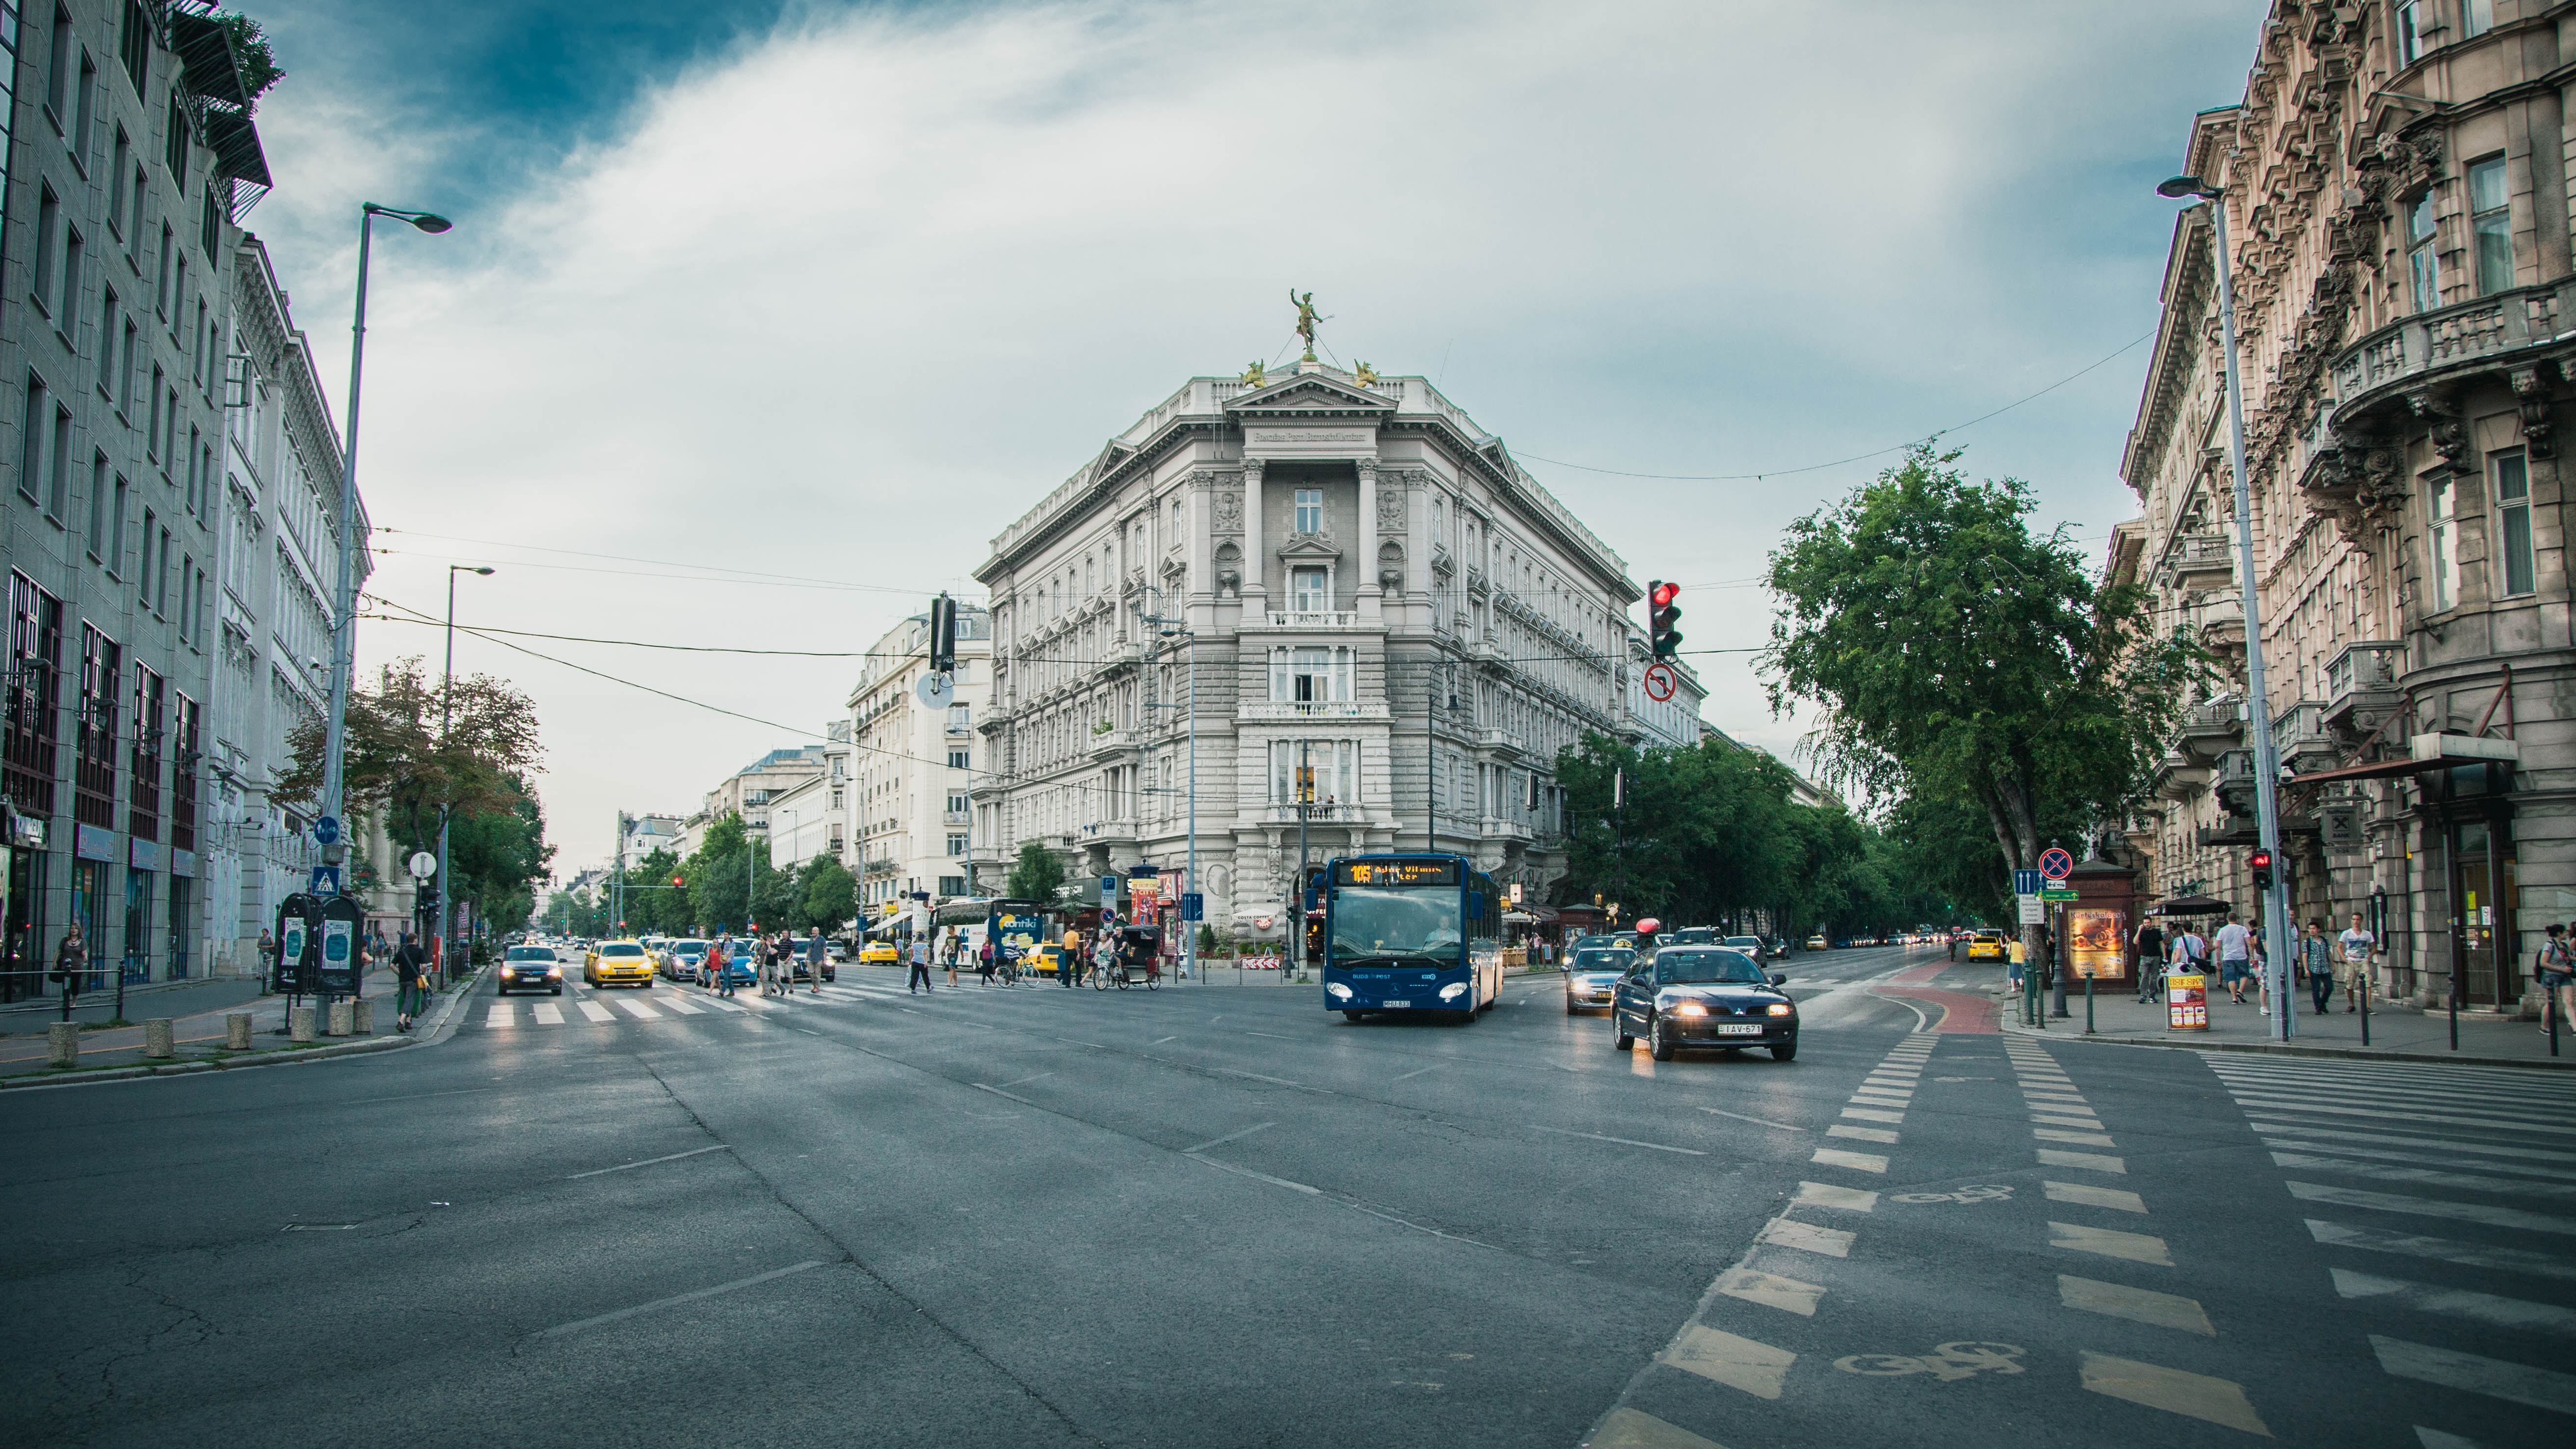 Busy crossroads at daytime with traffic and traditional architecture in Budapest